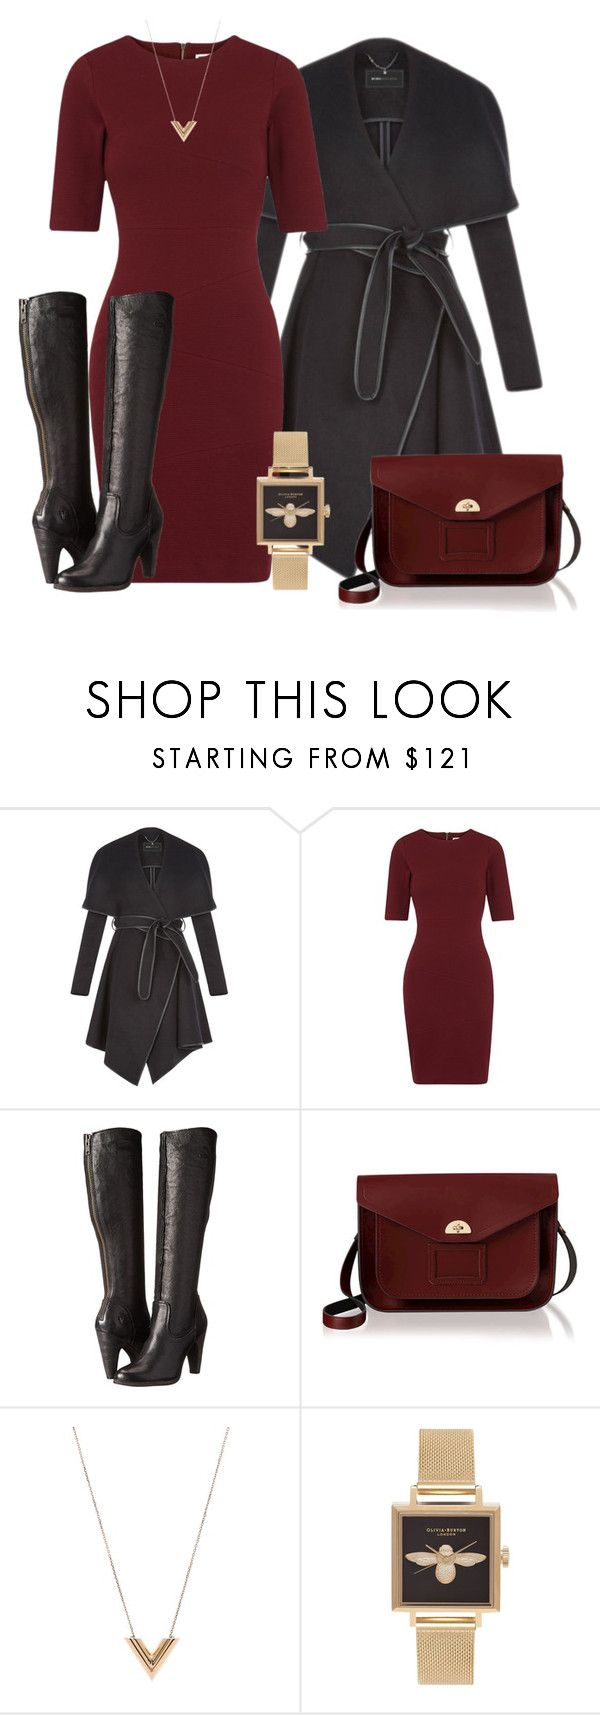 """""""Winter Professional Wardrobe Capsule: Outfit 19"""" by vanessa-bohlmann ❤ liked on Polyvore featuring BCBGeneration, Whistles, Frye, The Cambridge Satchel Company, Louis Vuitton and Olivia Burton"""